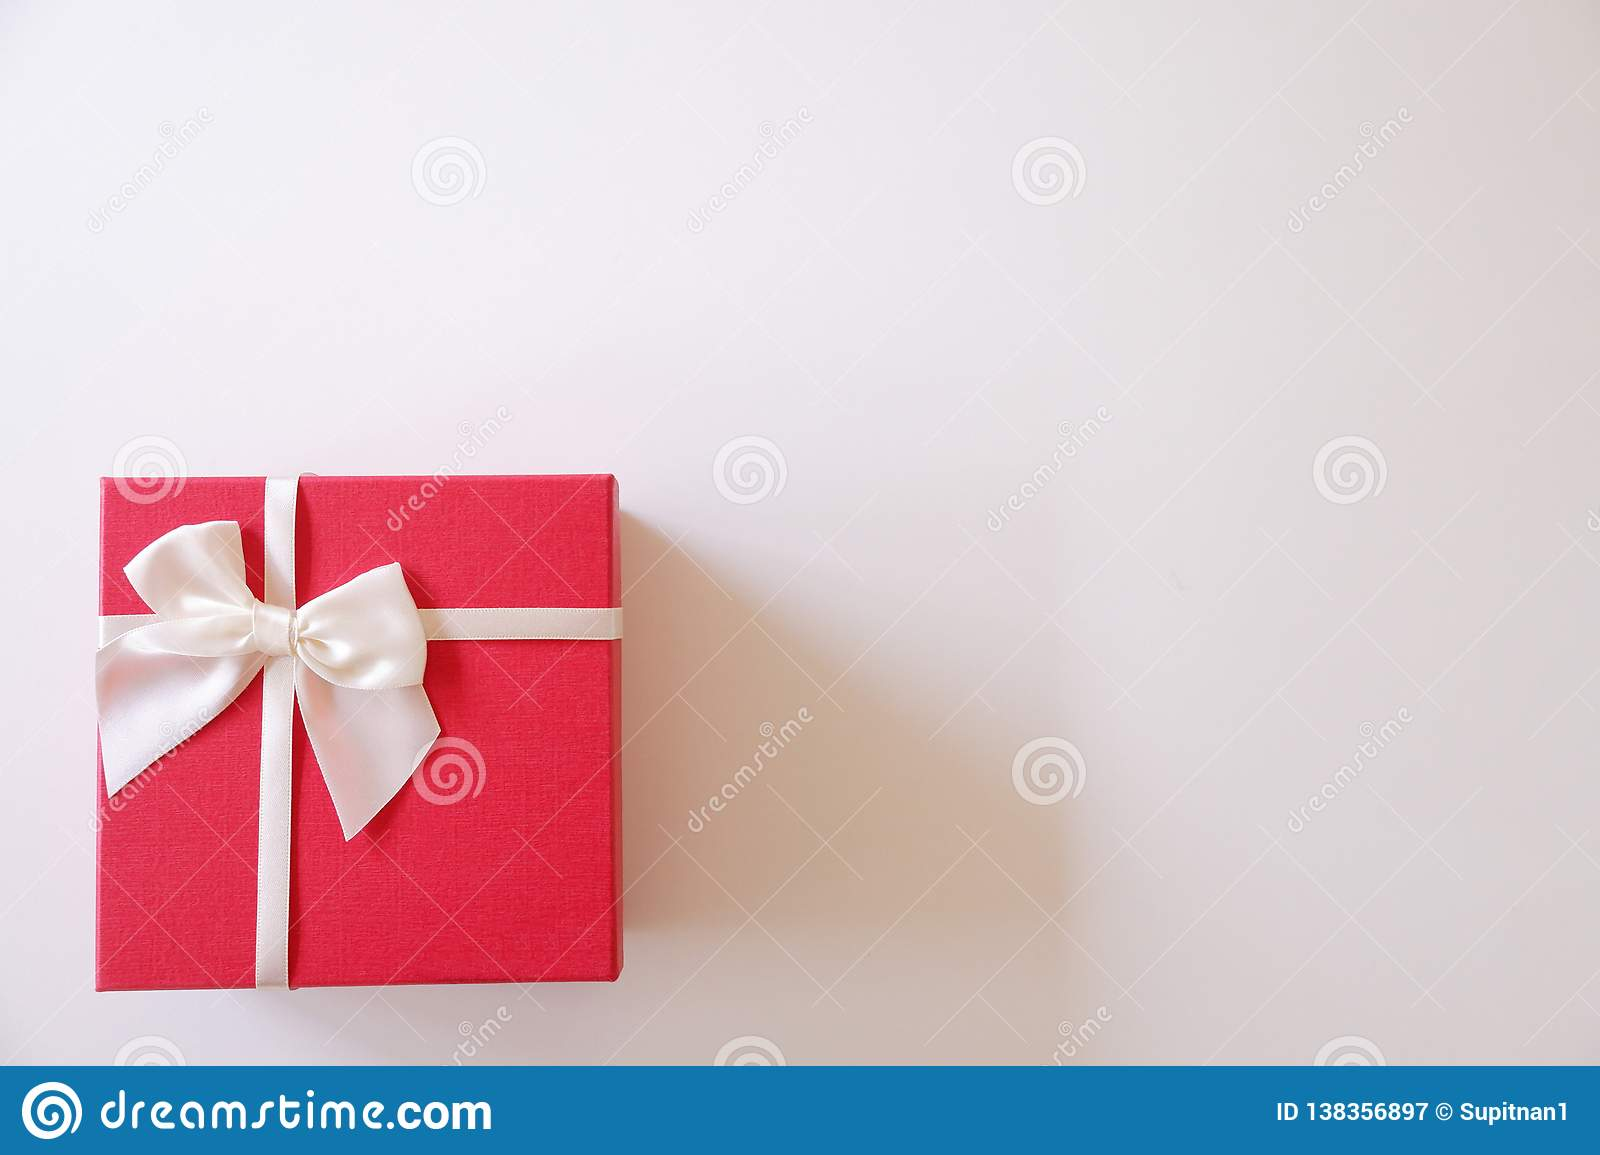 Close-up red gift box with white ribbon on white background